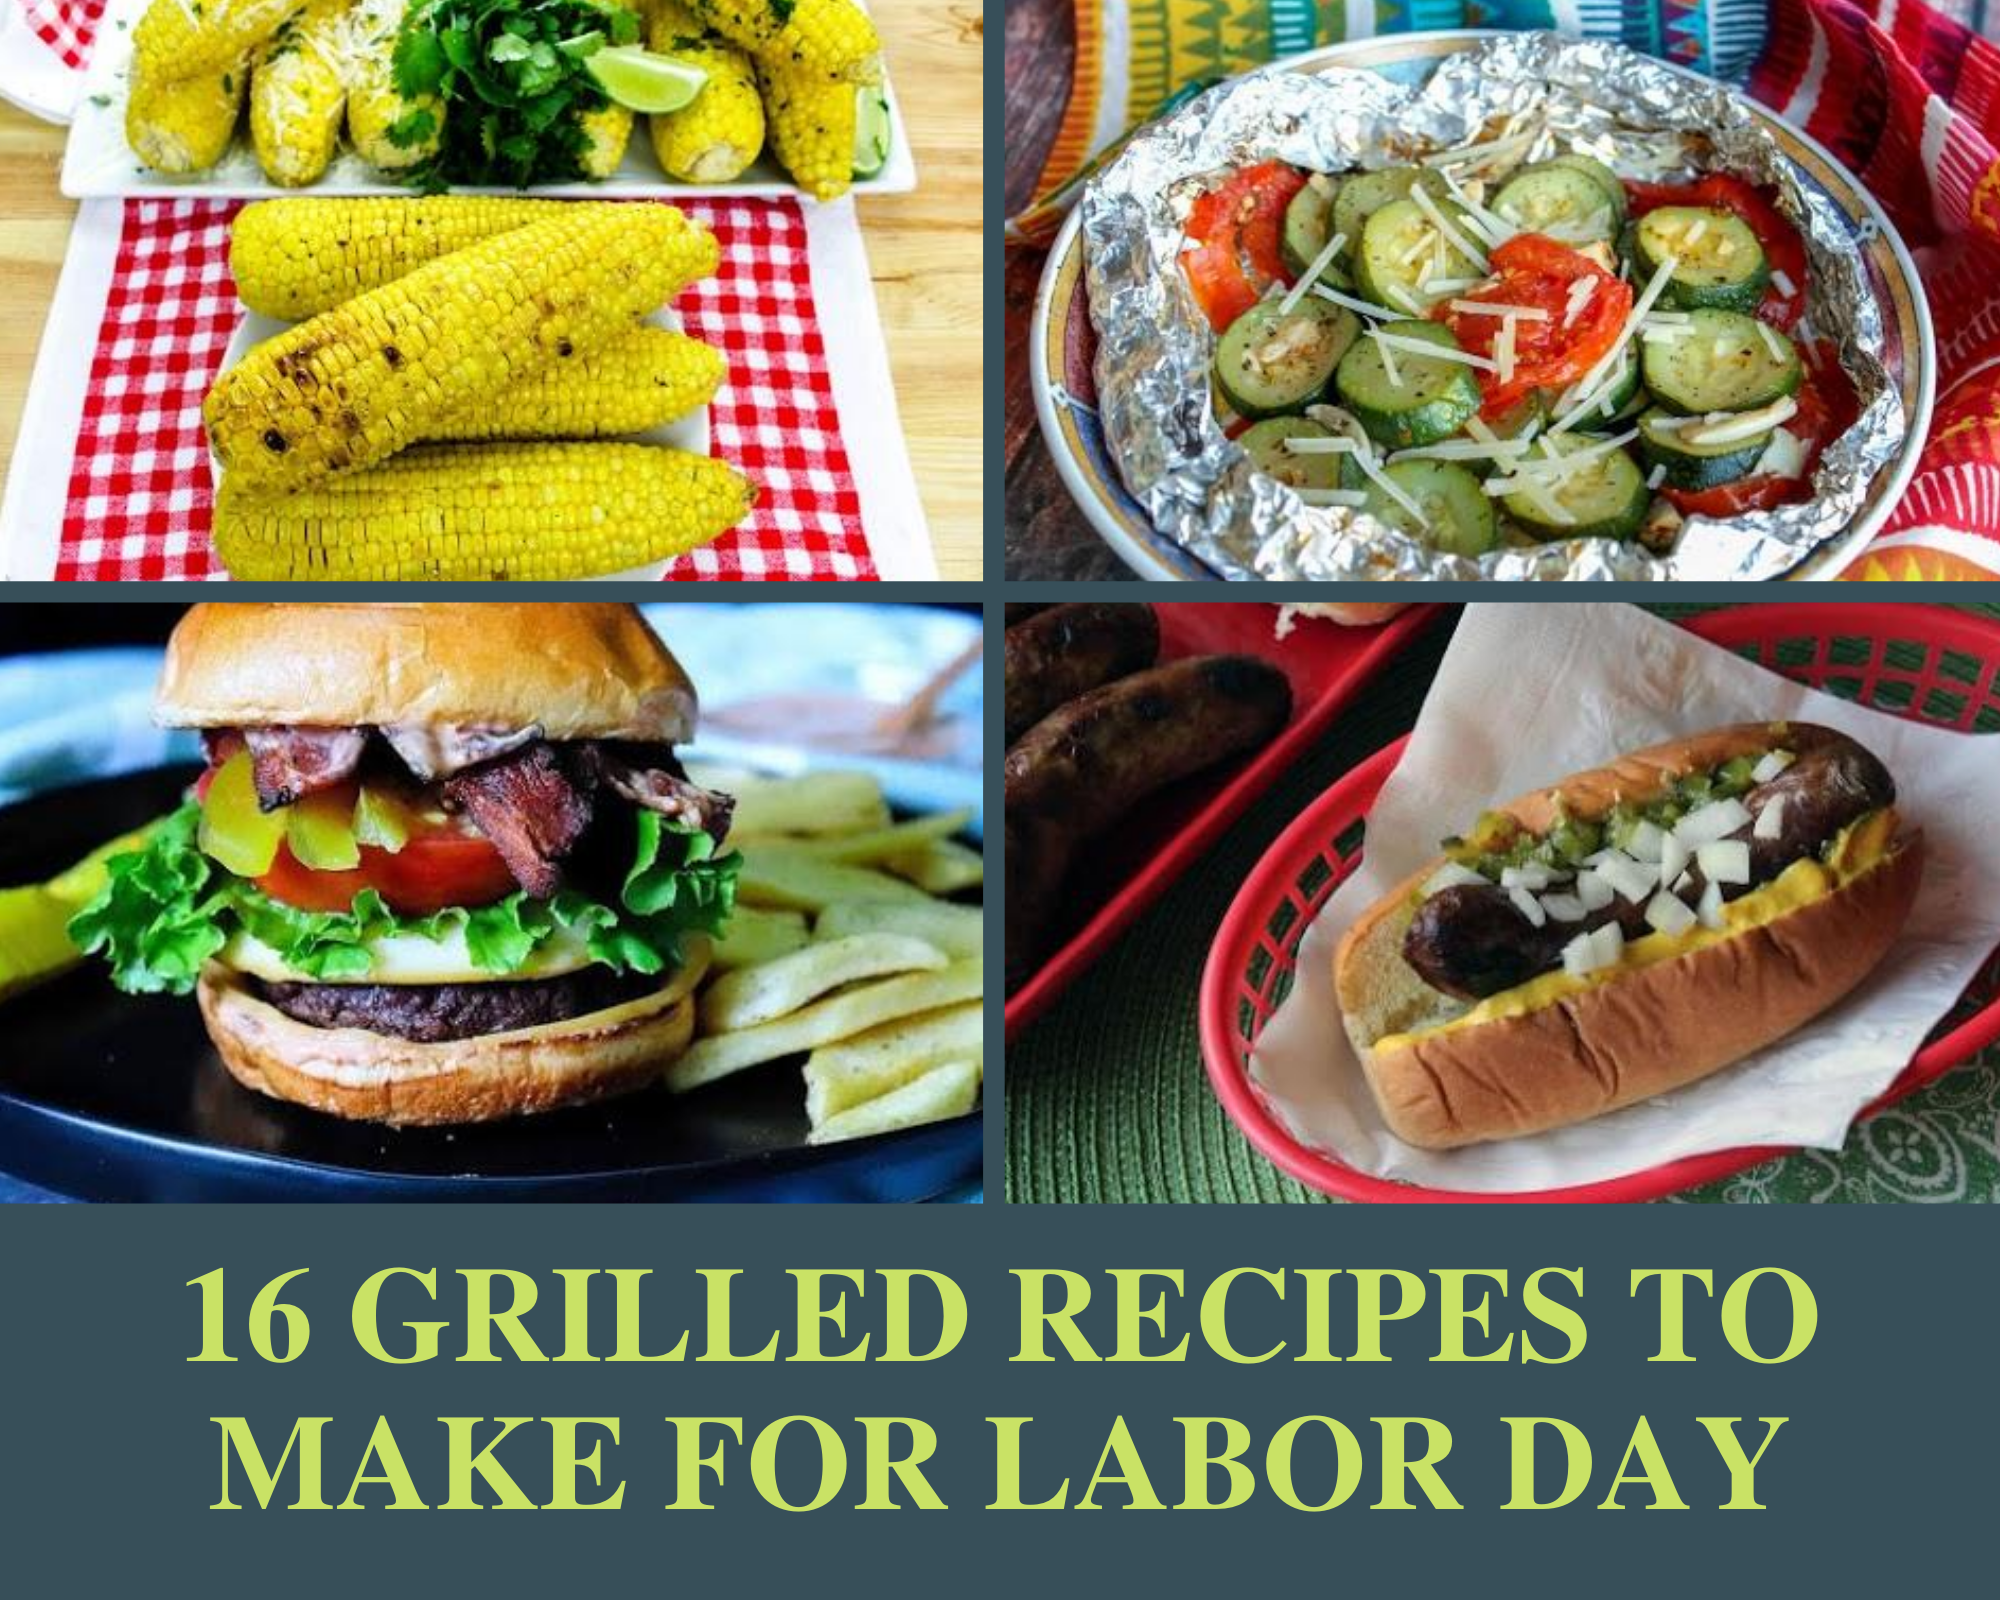 Grilled corn on the cob, burgers, brauts and zucchini